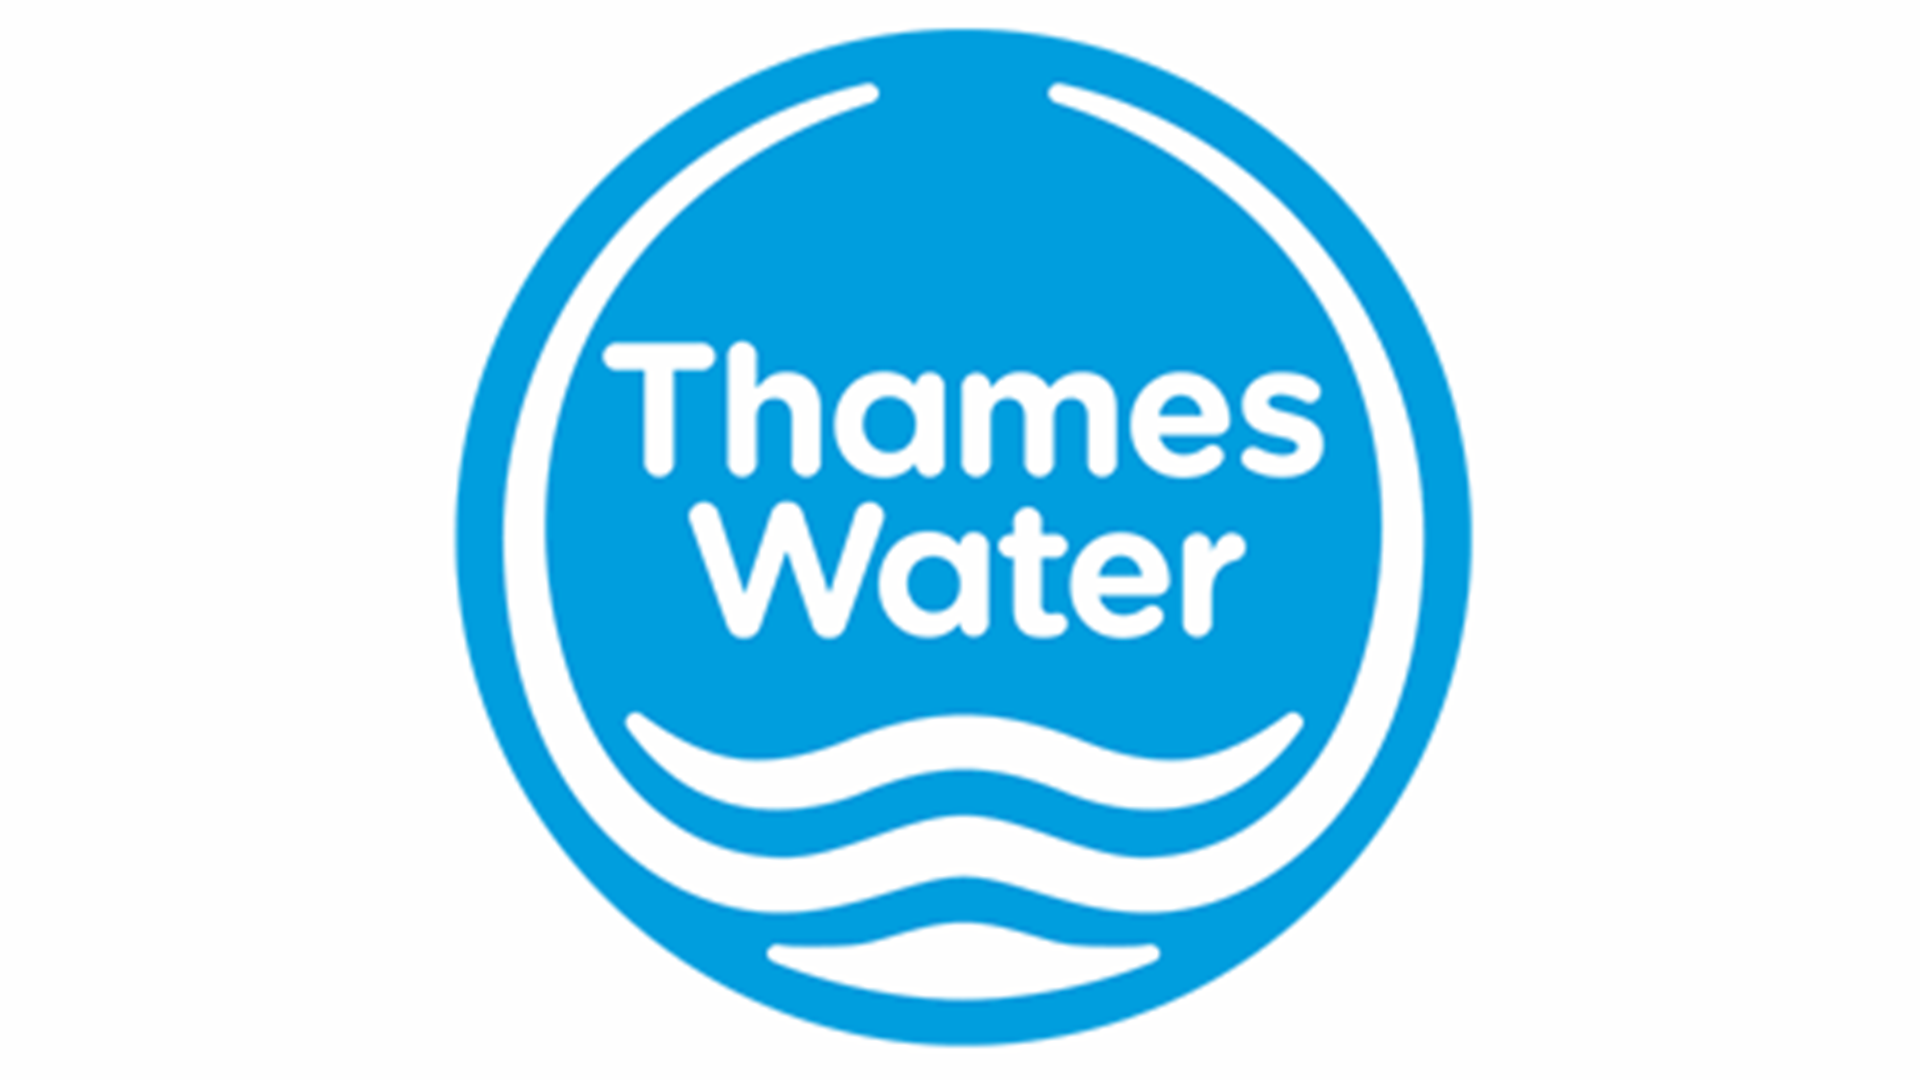 Thames Water partnership